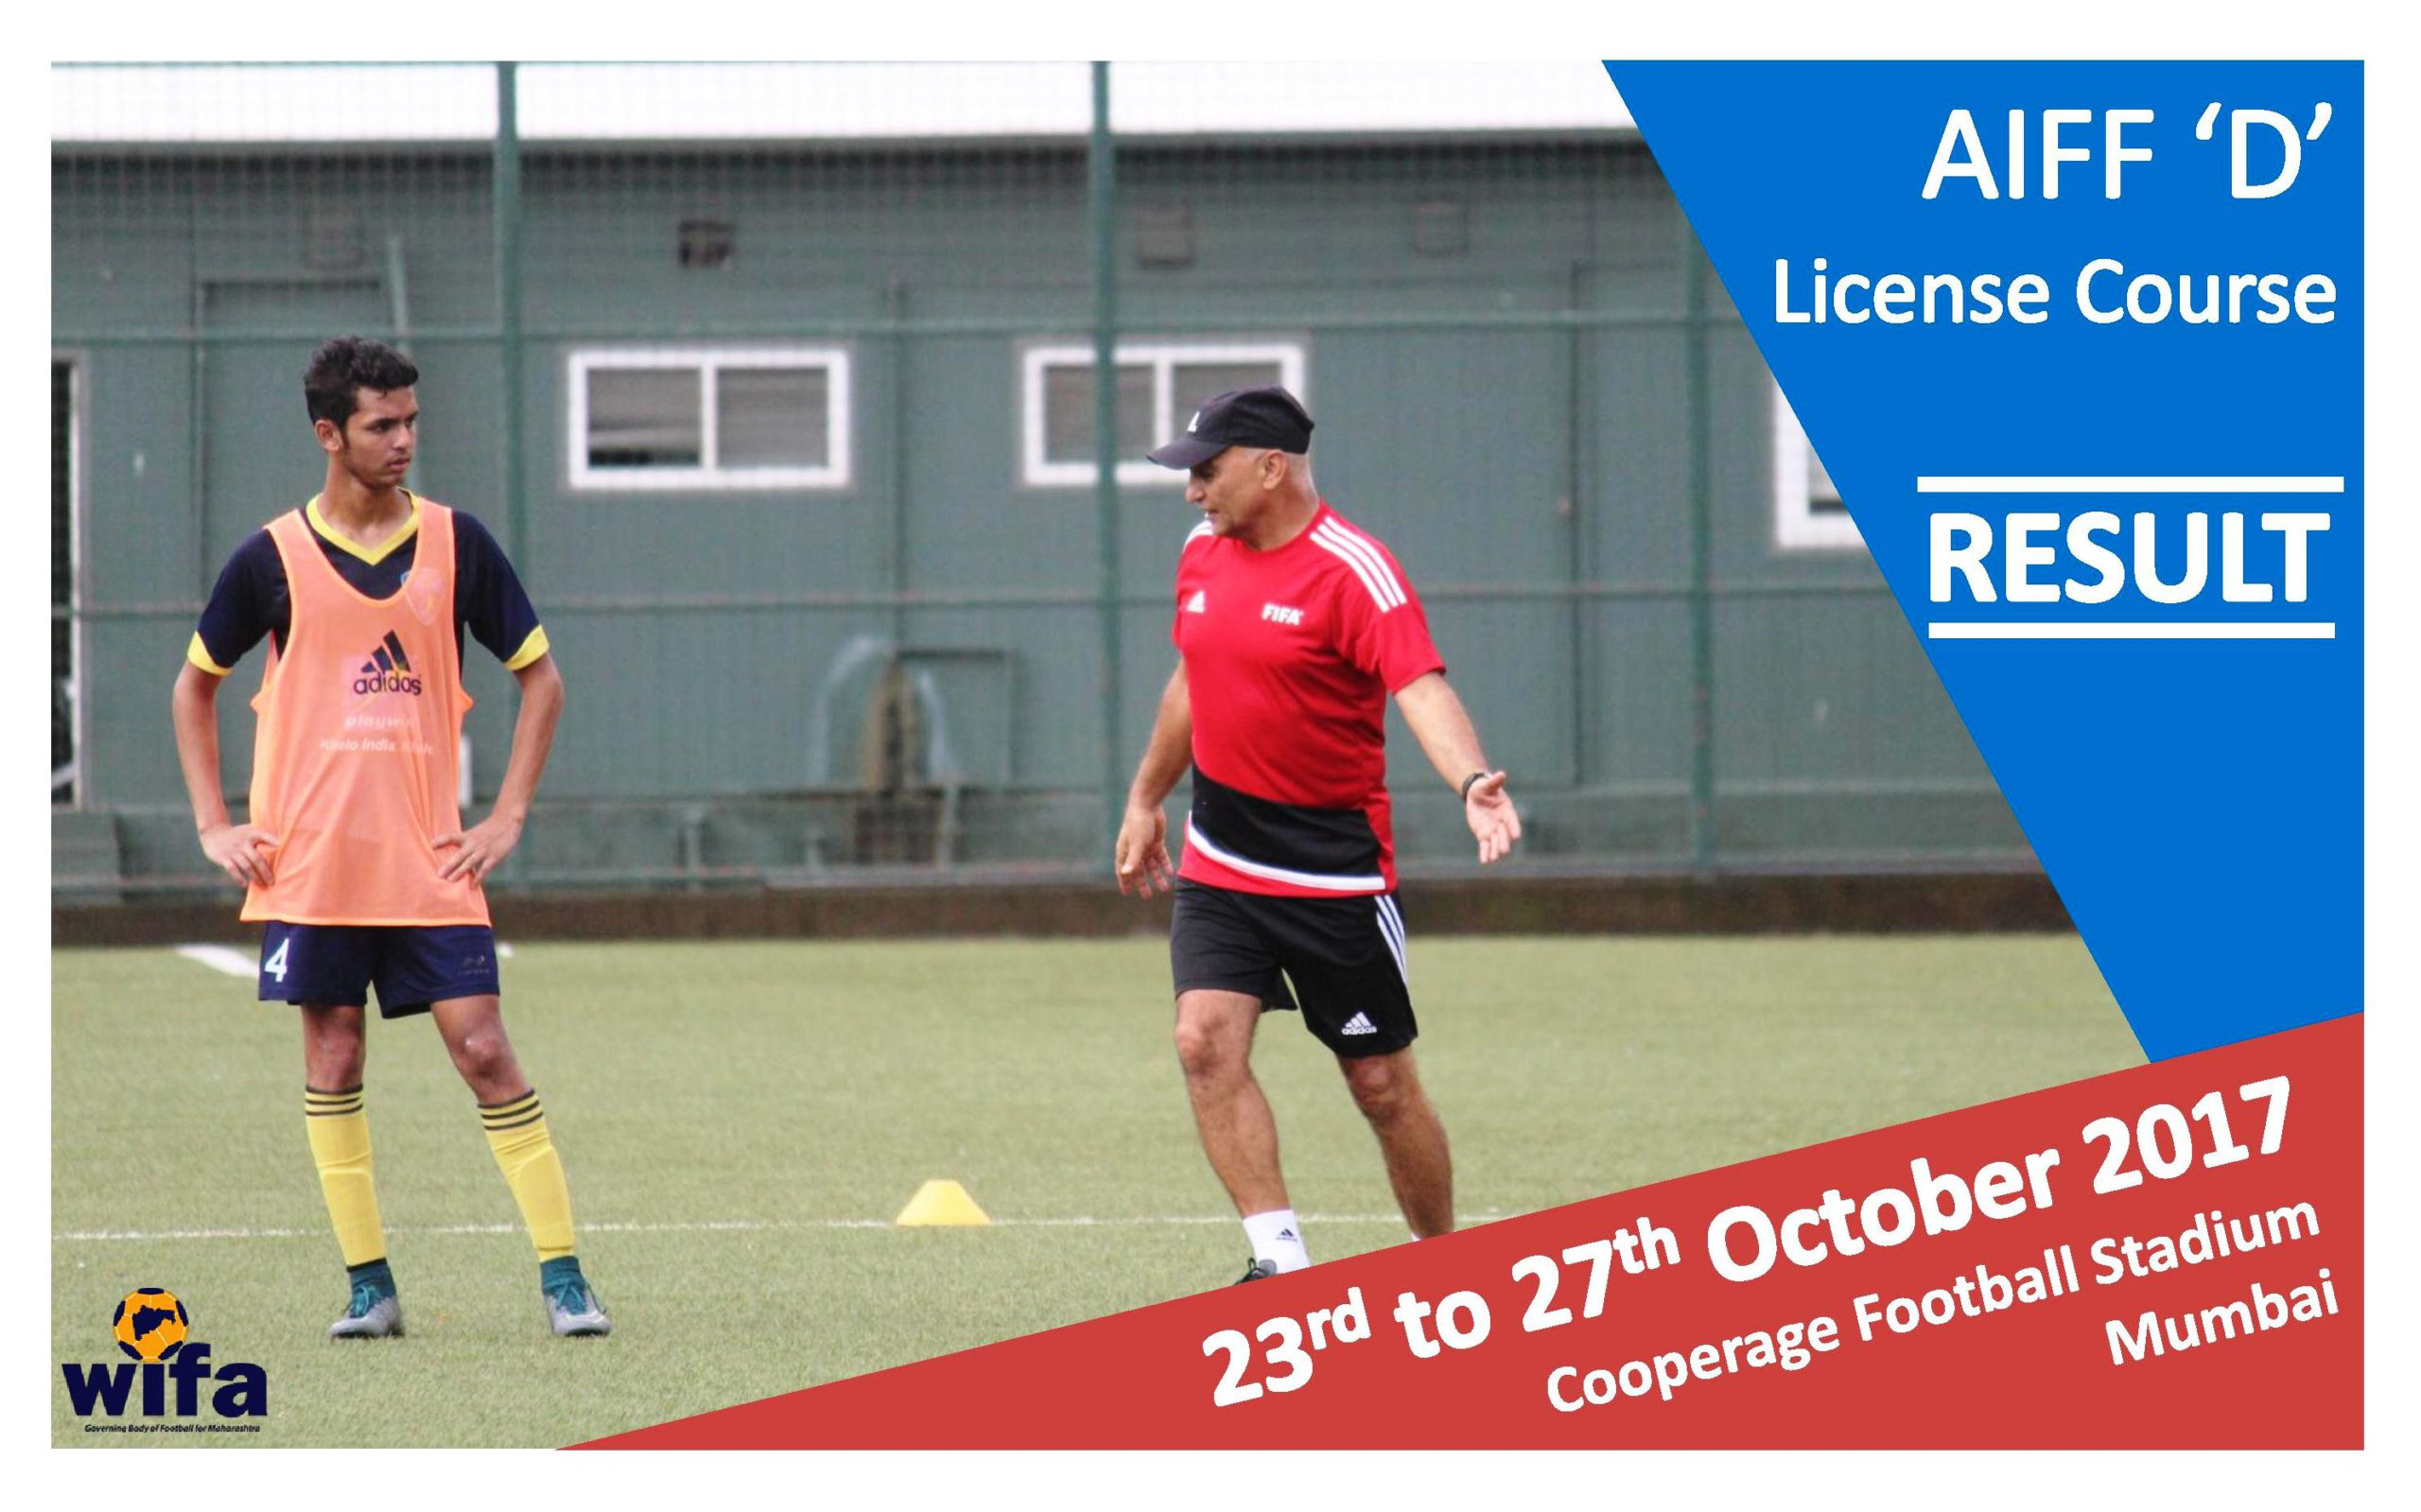 AIFF D License Course – 23rd to 27th October 2017 – Results